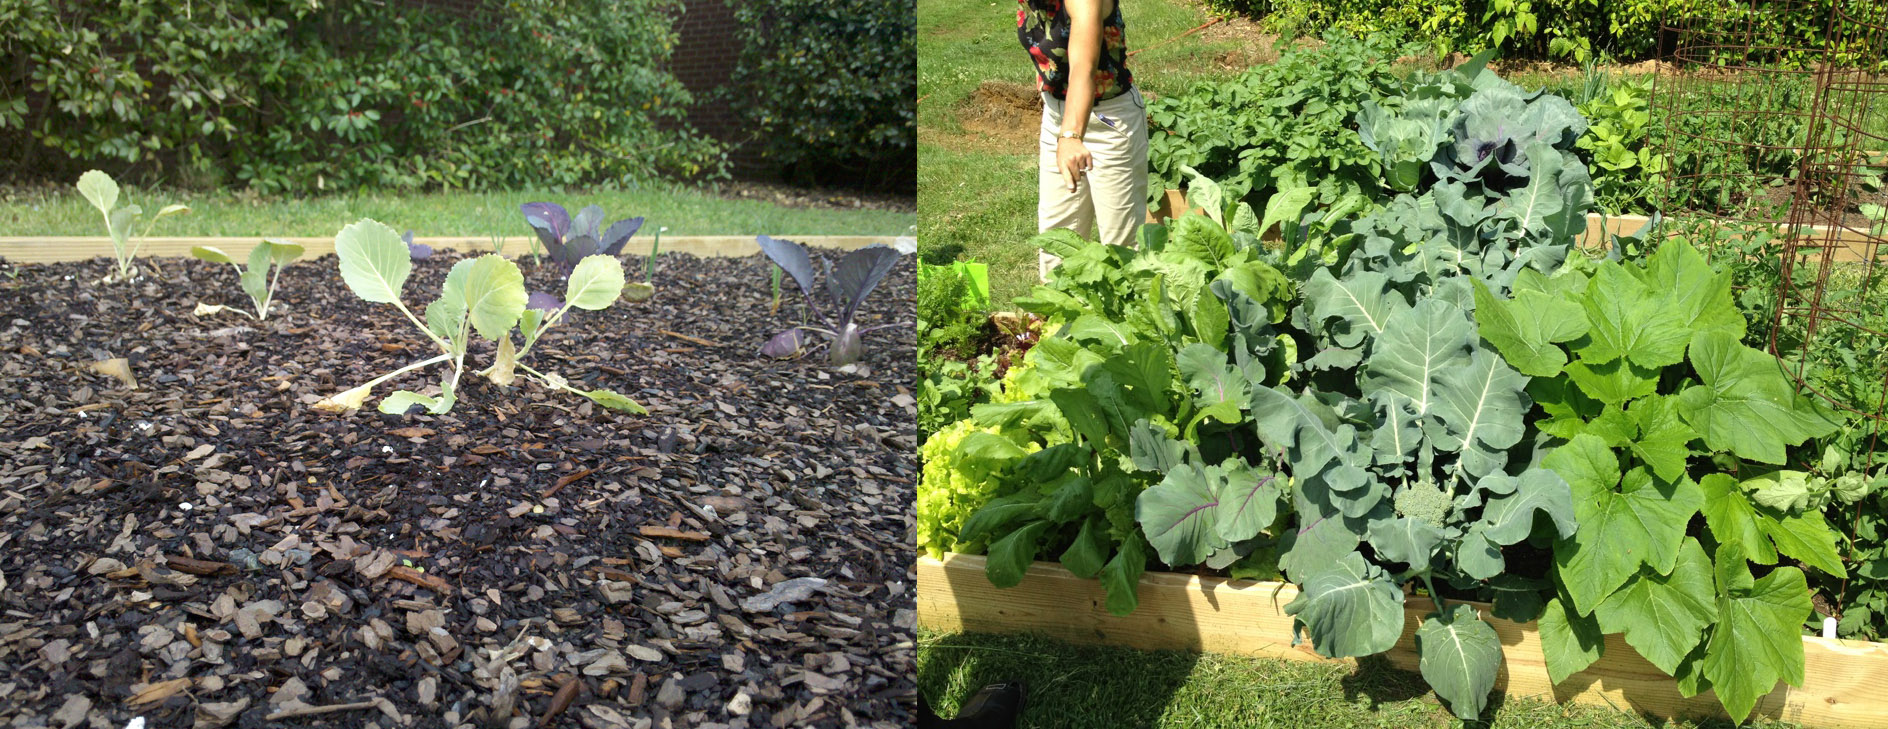 Share the Harvest Garden (before and after)